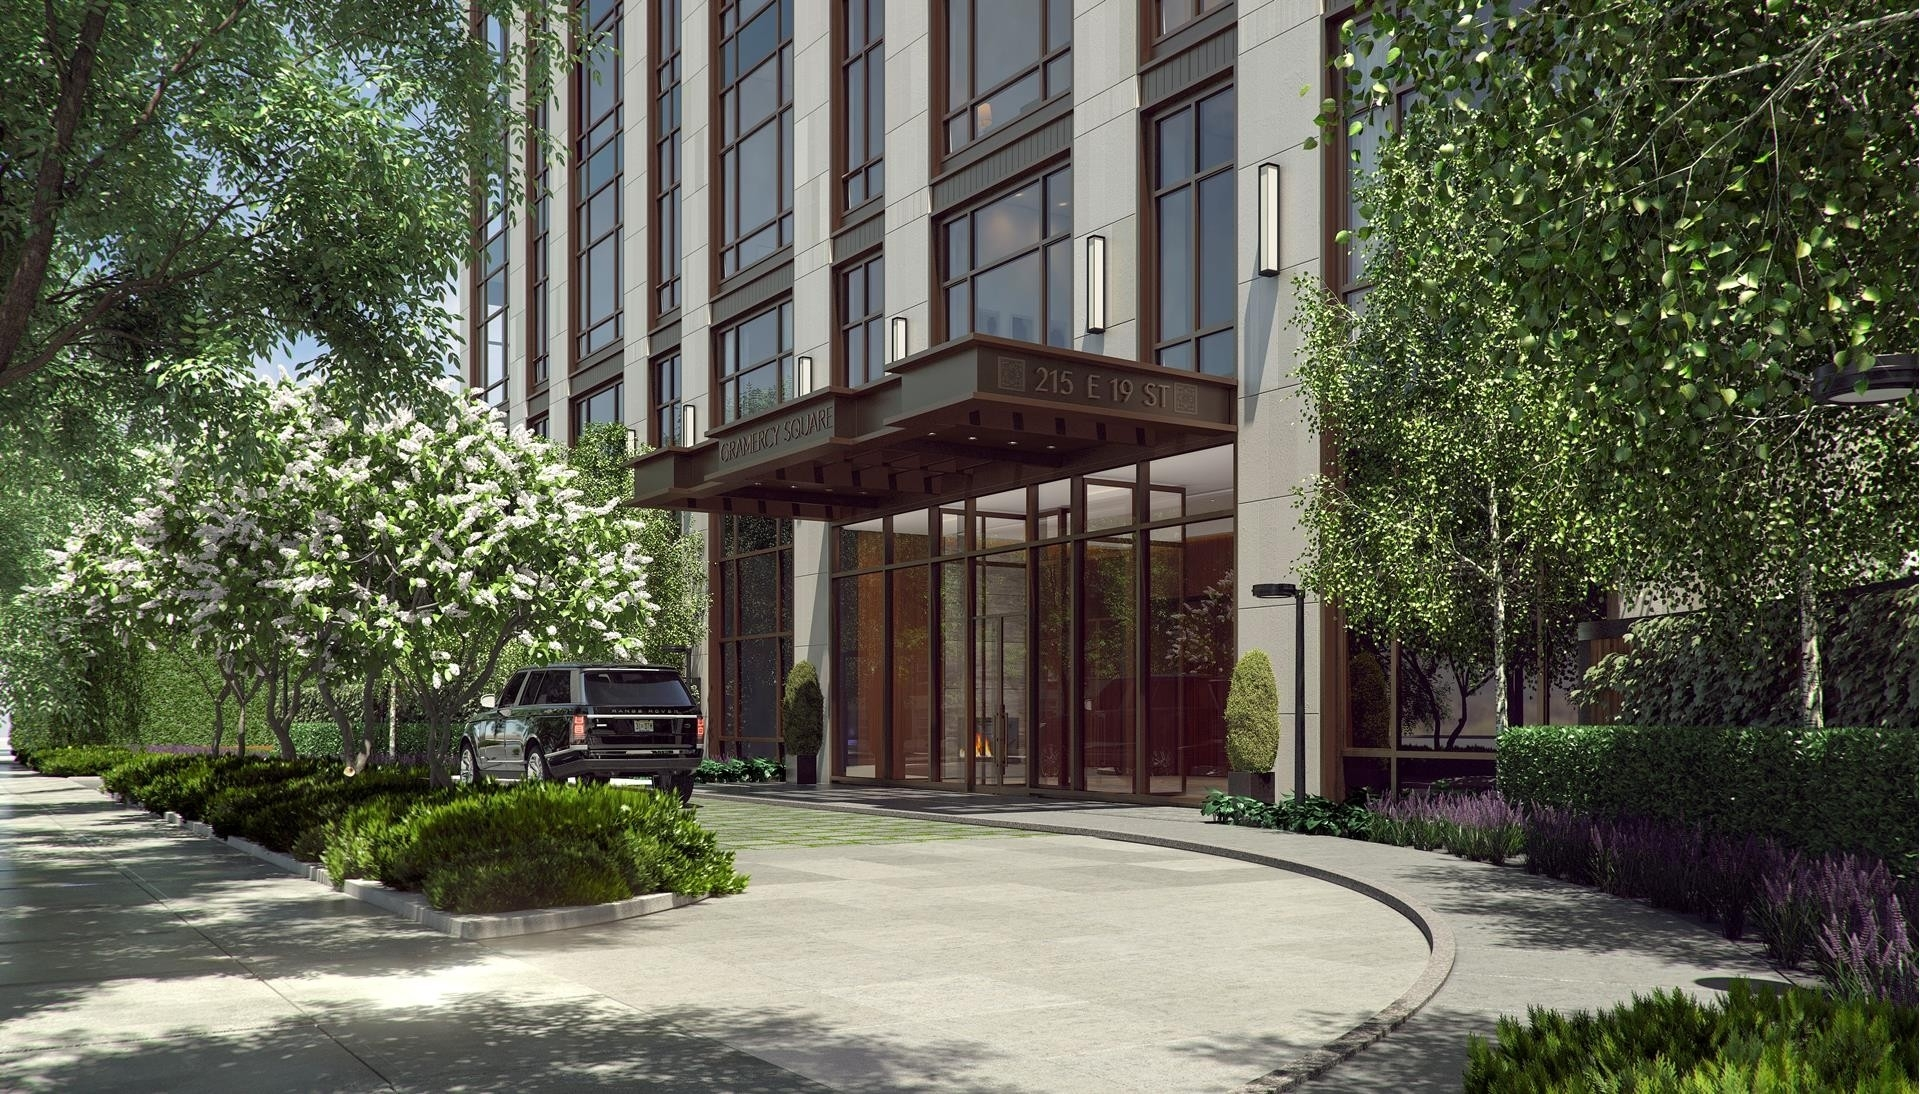 Property at Gramercy Square, 215 East 19th St, 10C Gramercy Park, New York, NY 10003